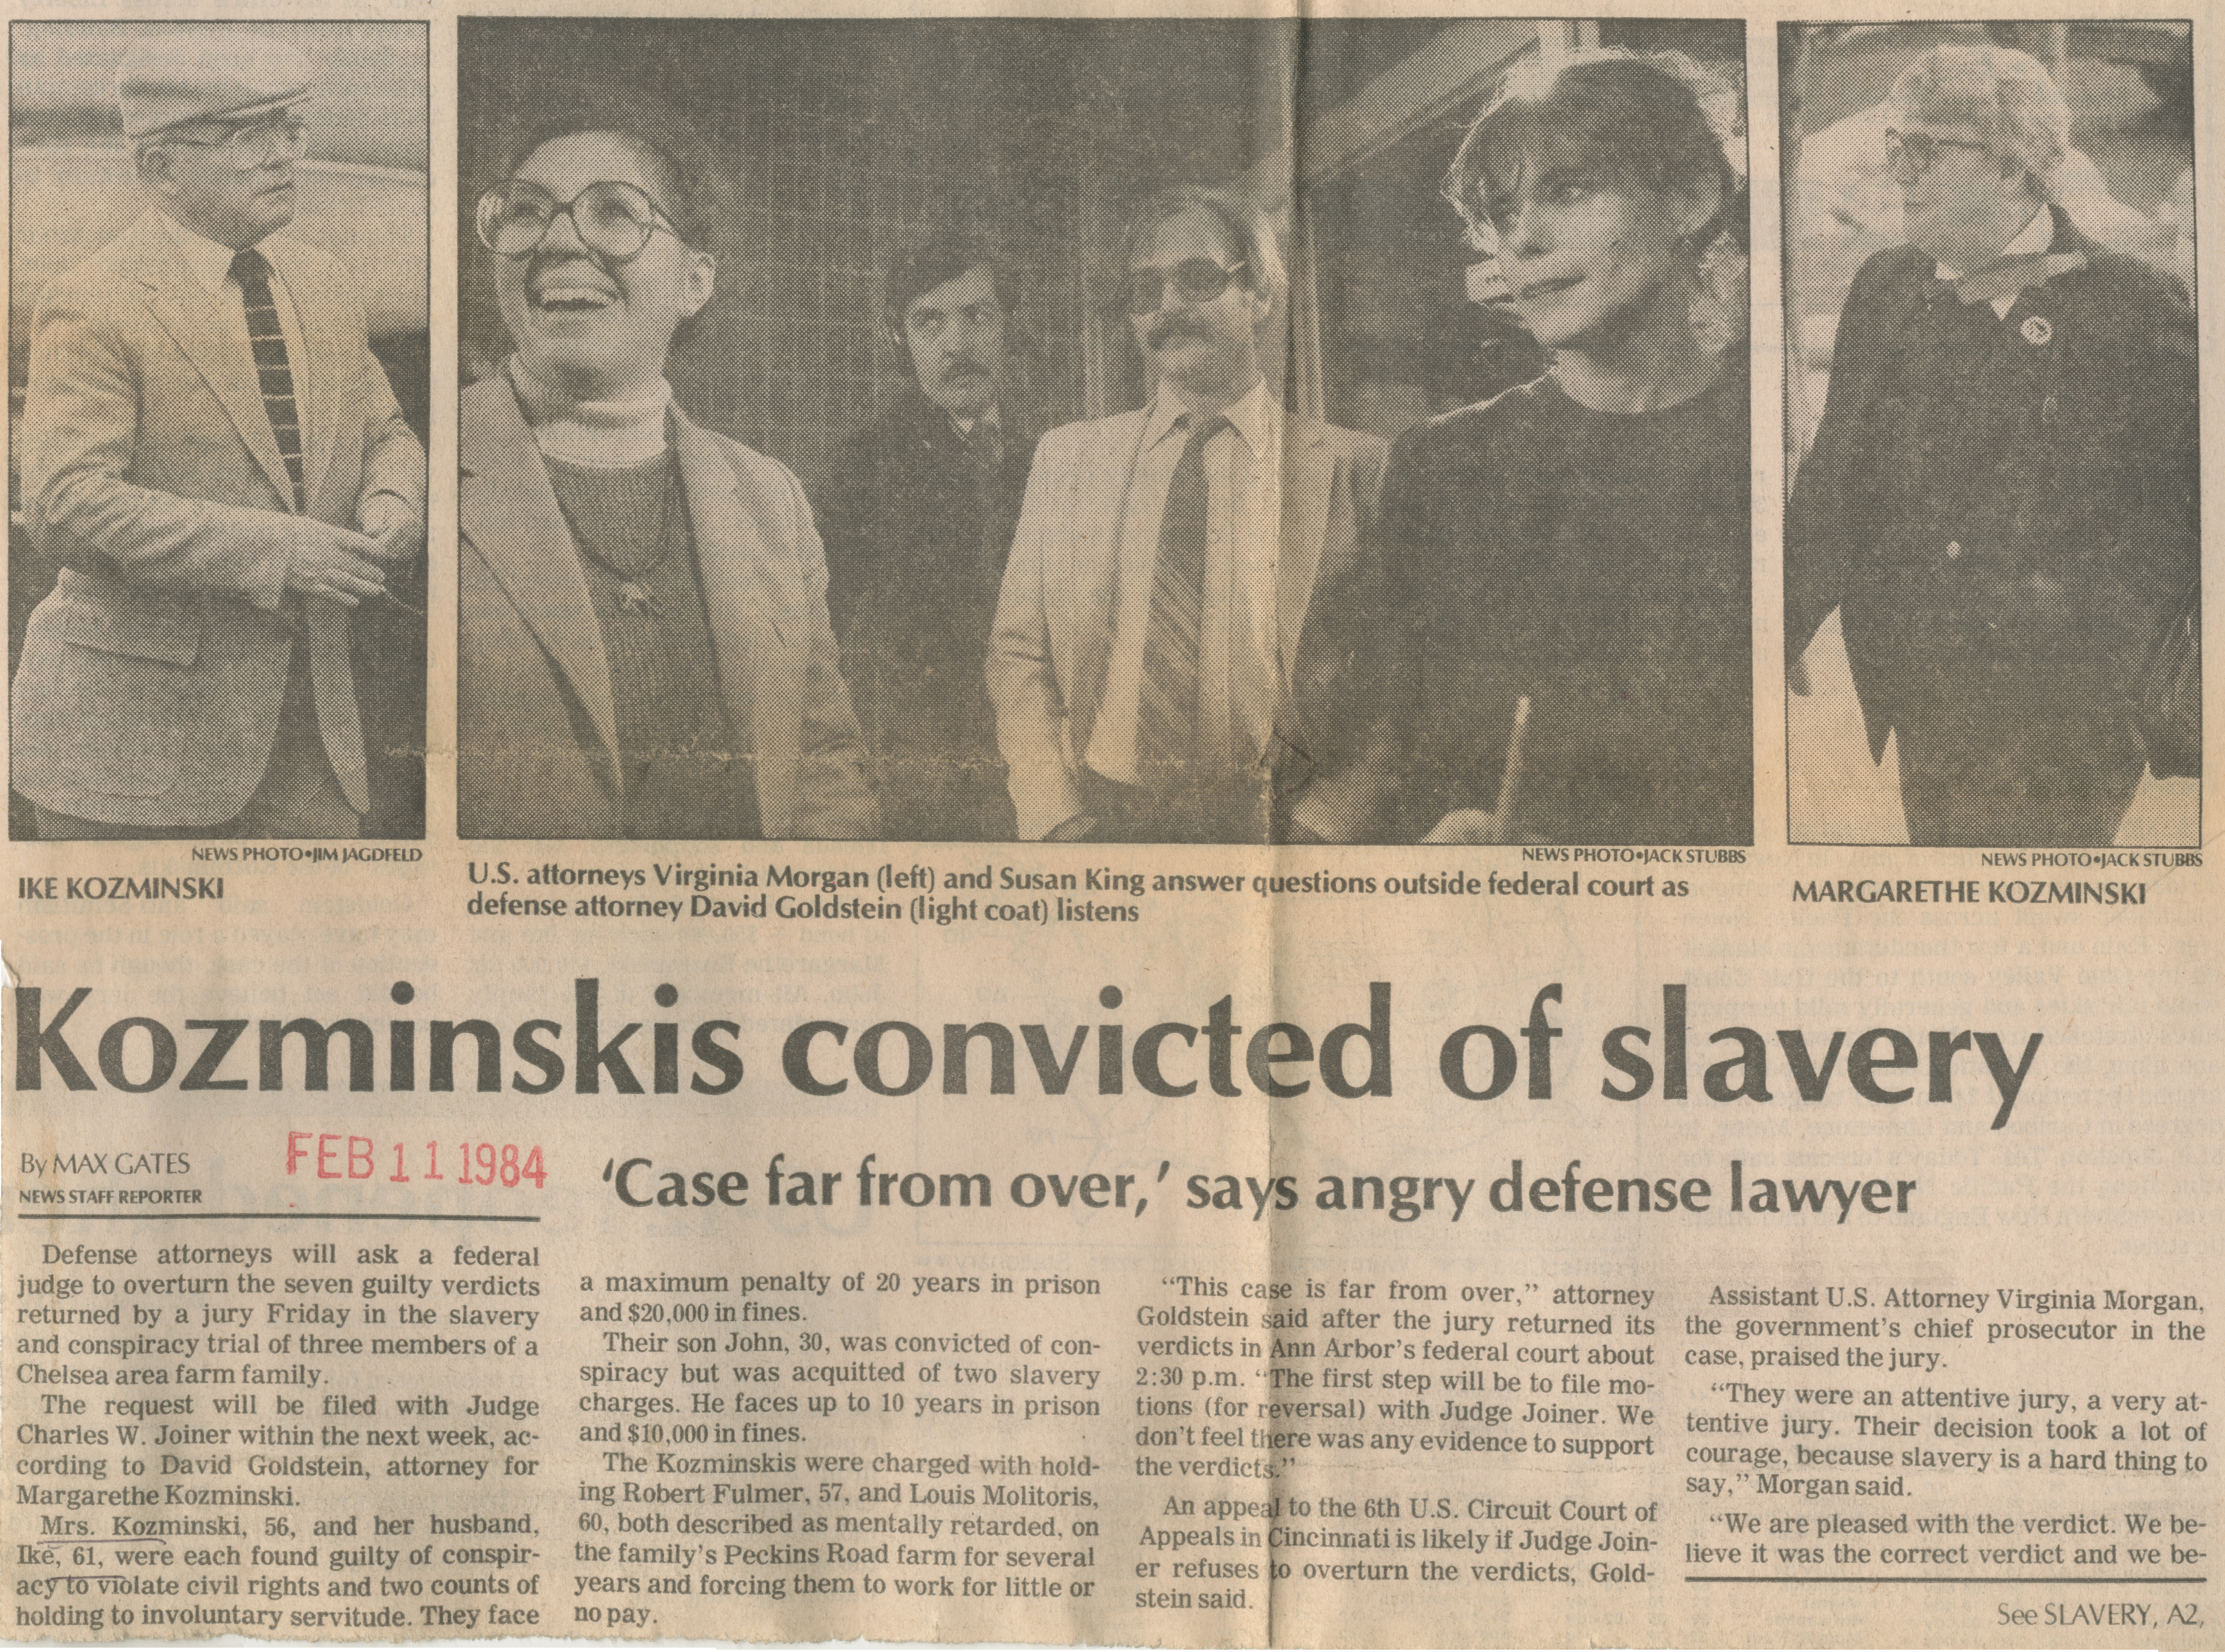 Kozminskis convicted of slavery image